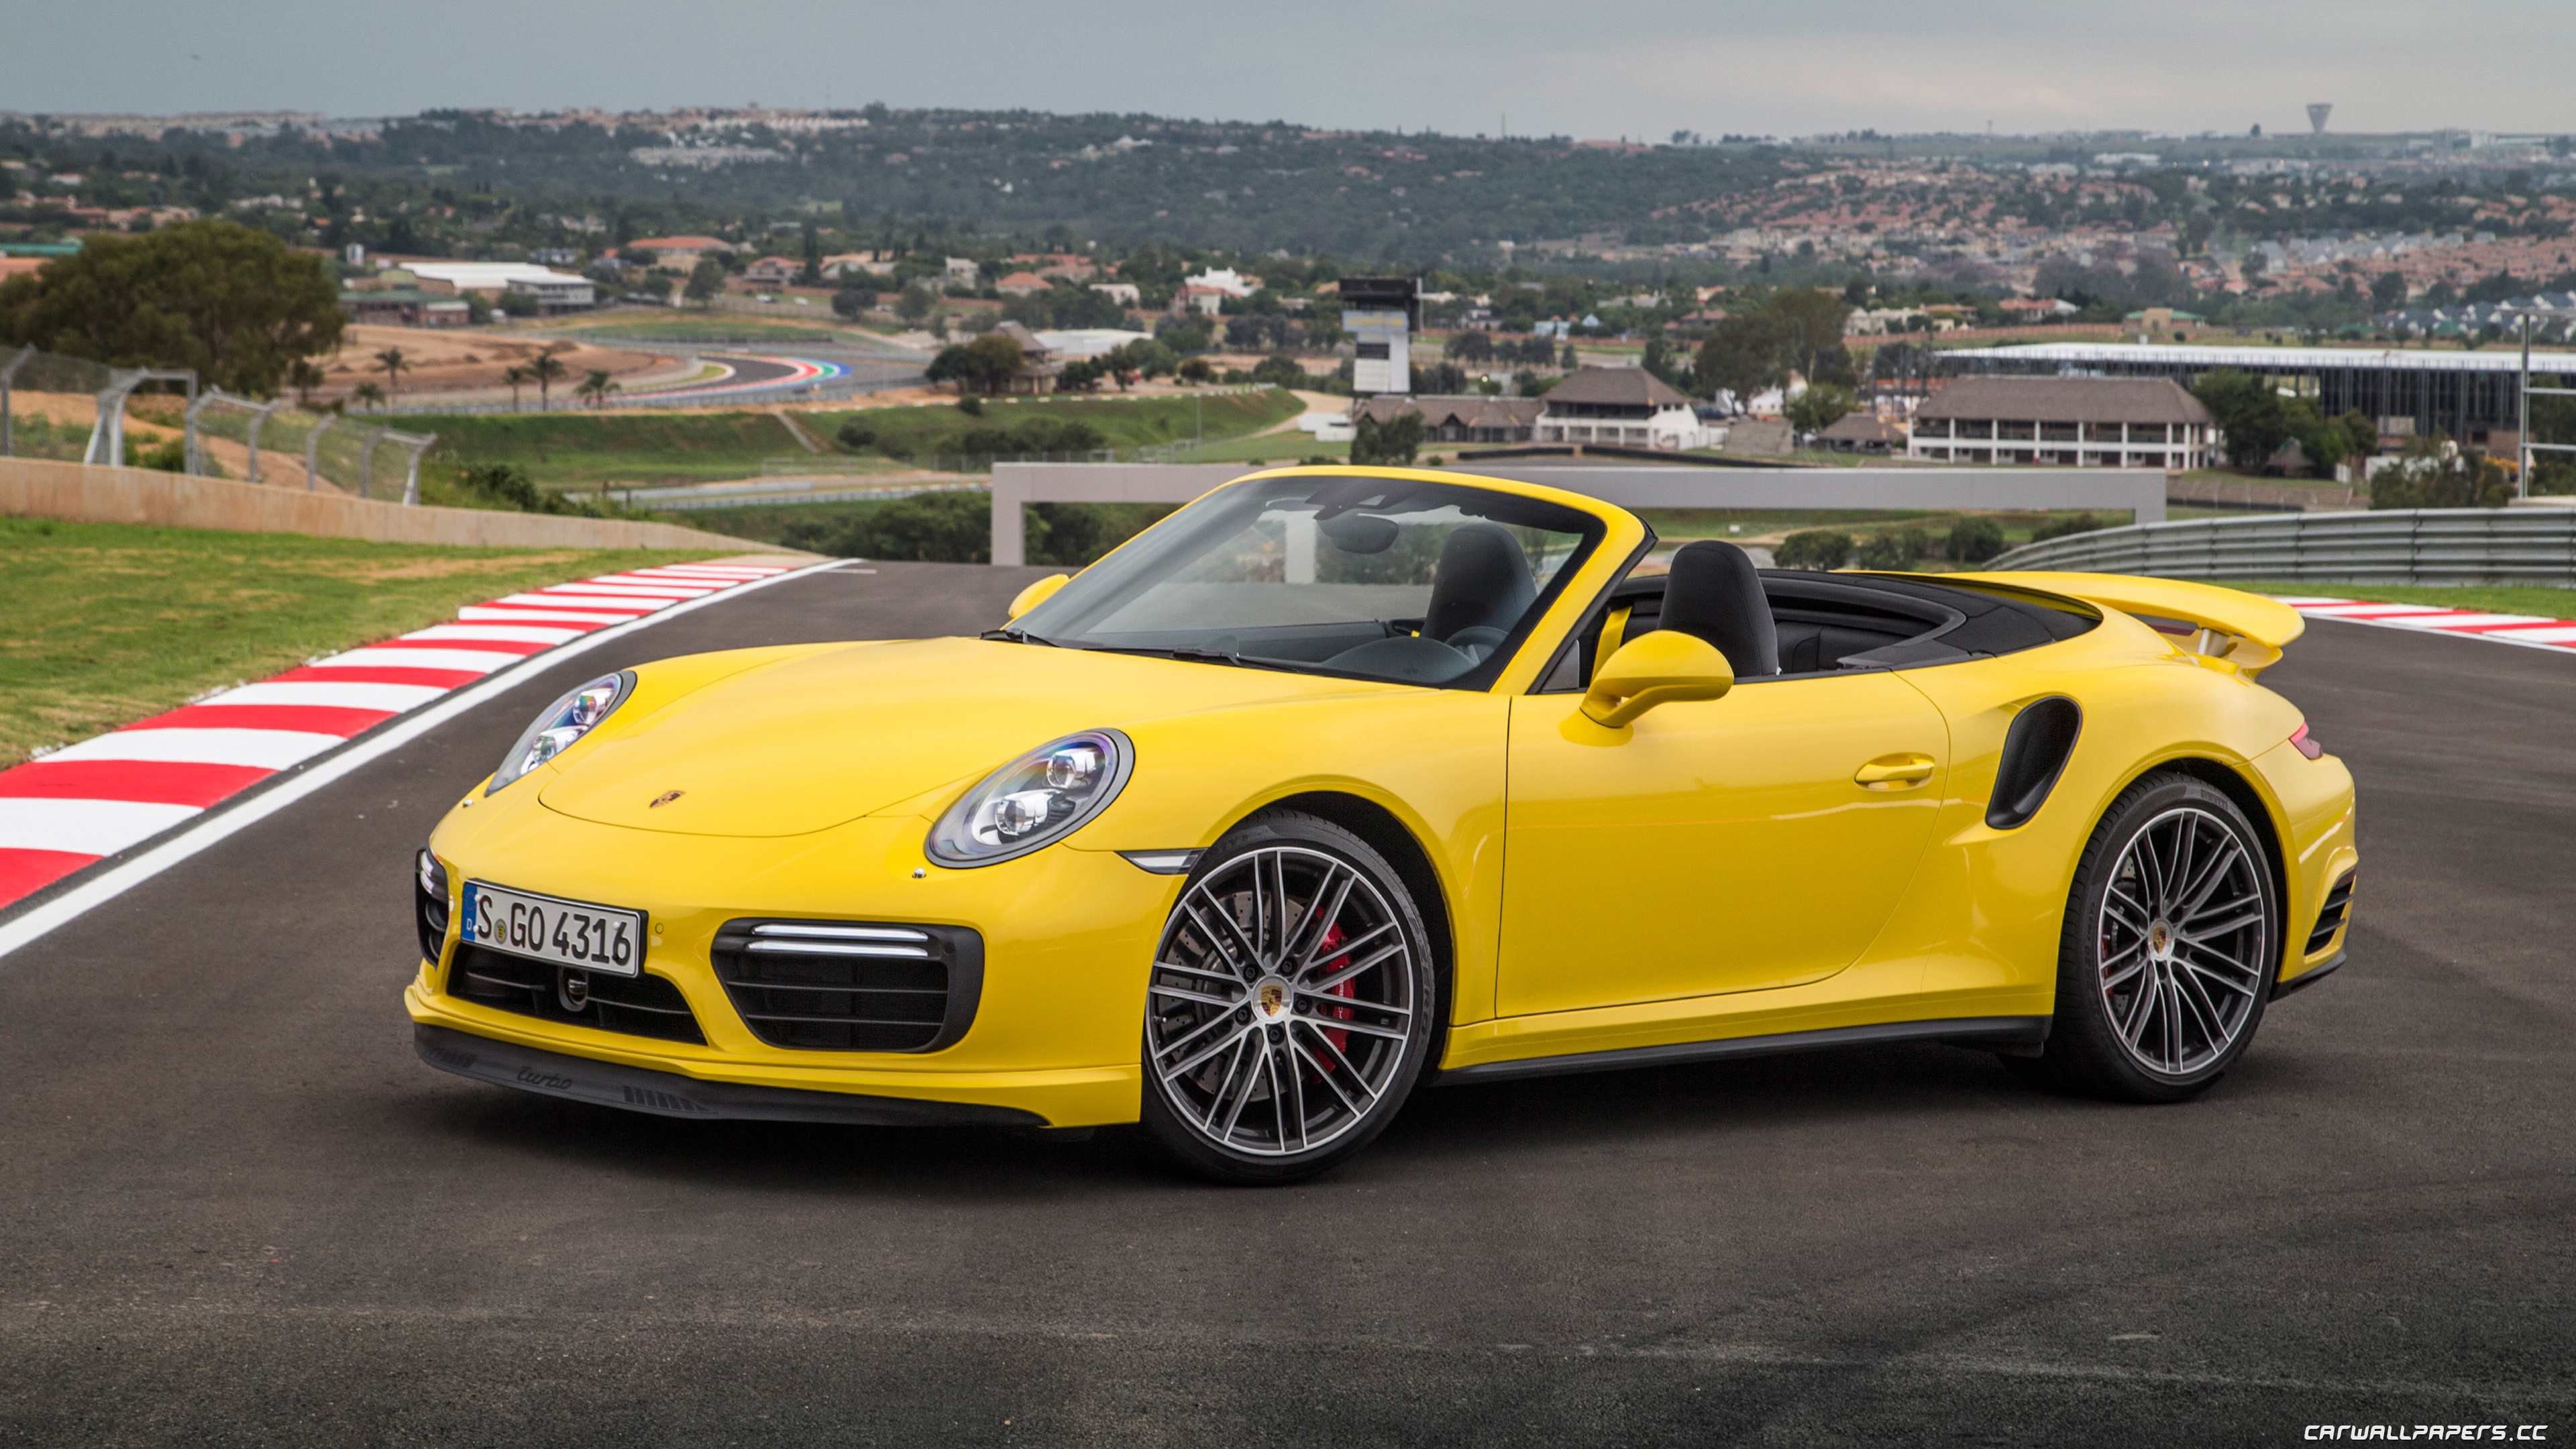 Porsche 911 Turbo Cabriolet hd big